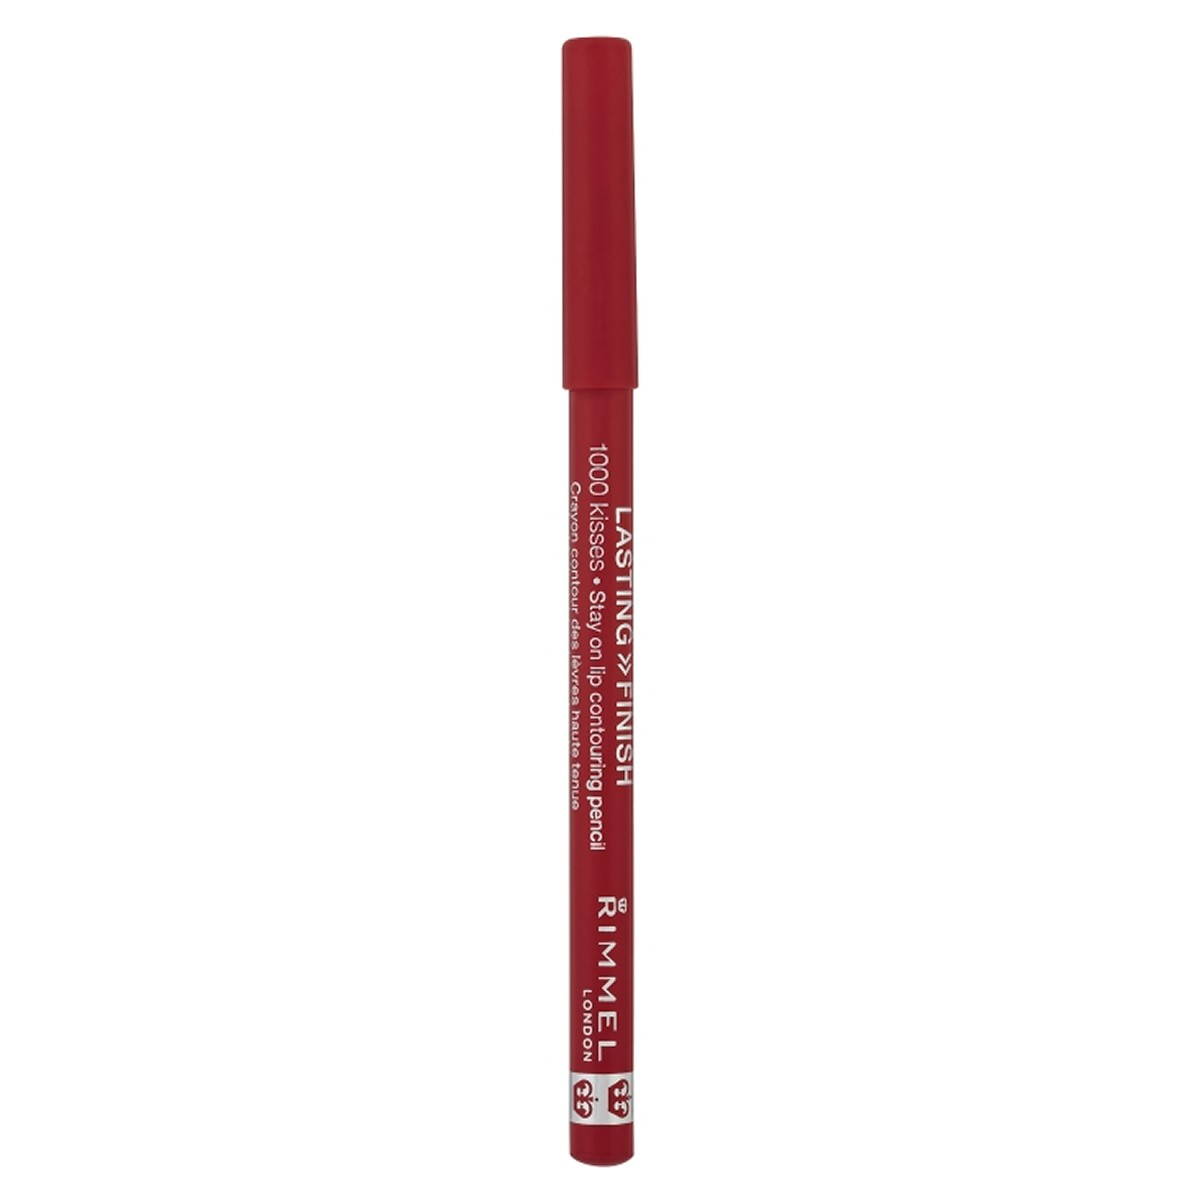 Rimmel Lasting Finish 1000 Kisses Stay On Lip Contouring Pencil